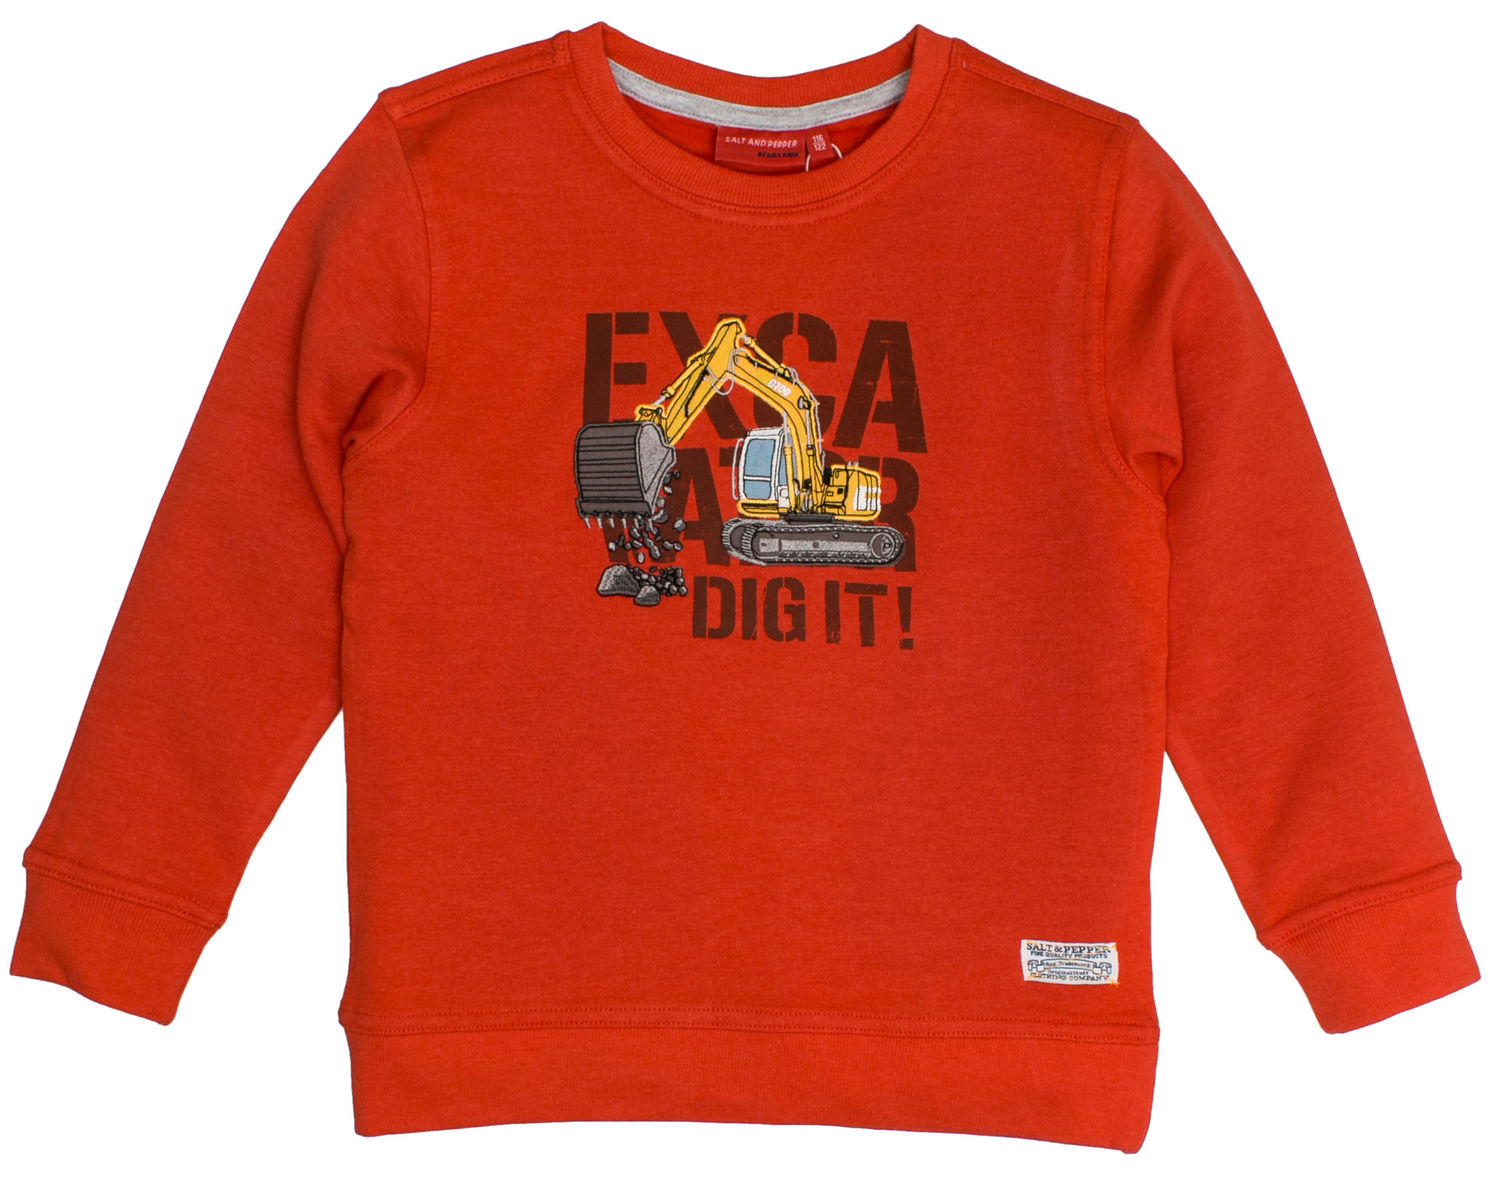 2aef0ea3bb Salt and Pepper Jungen - Huge Maschine Bagger Sweatshirt Orange | eBay